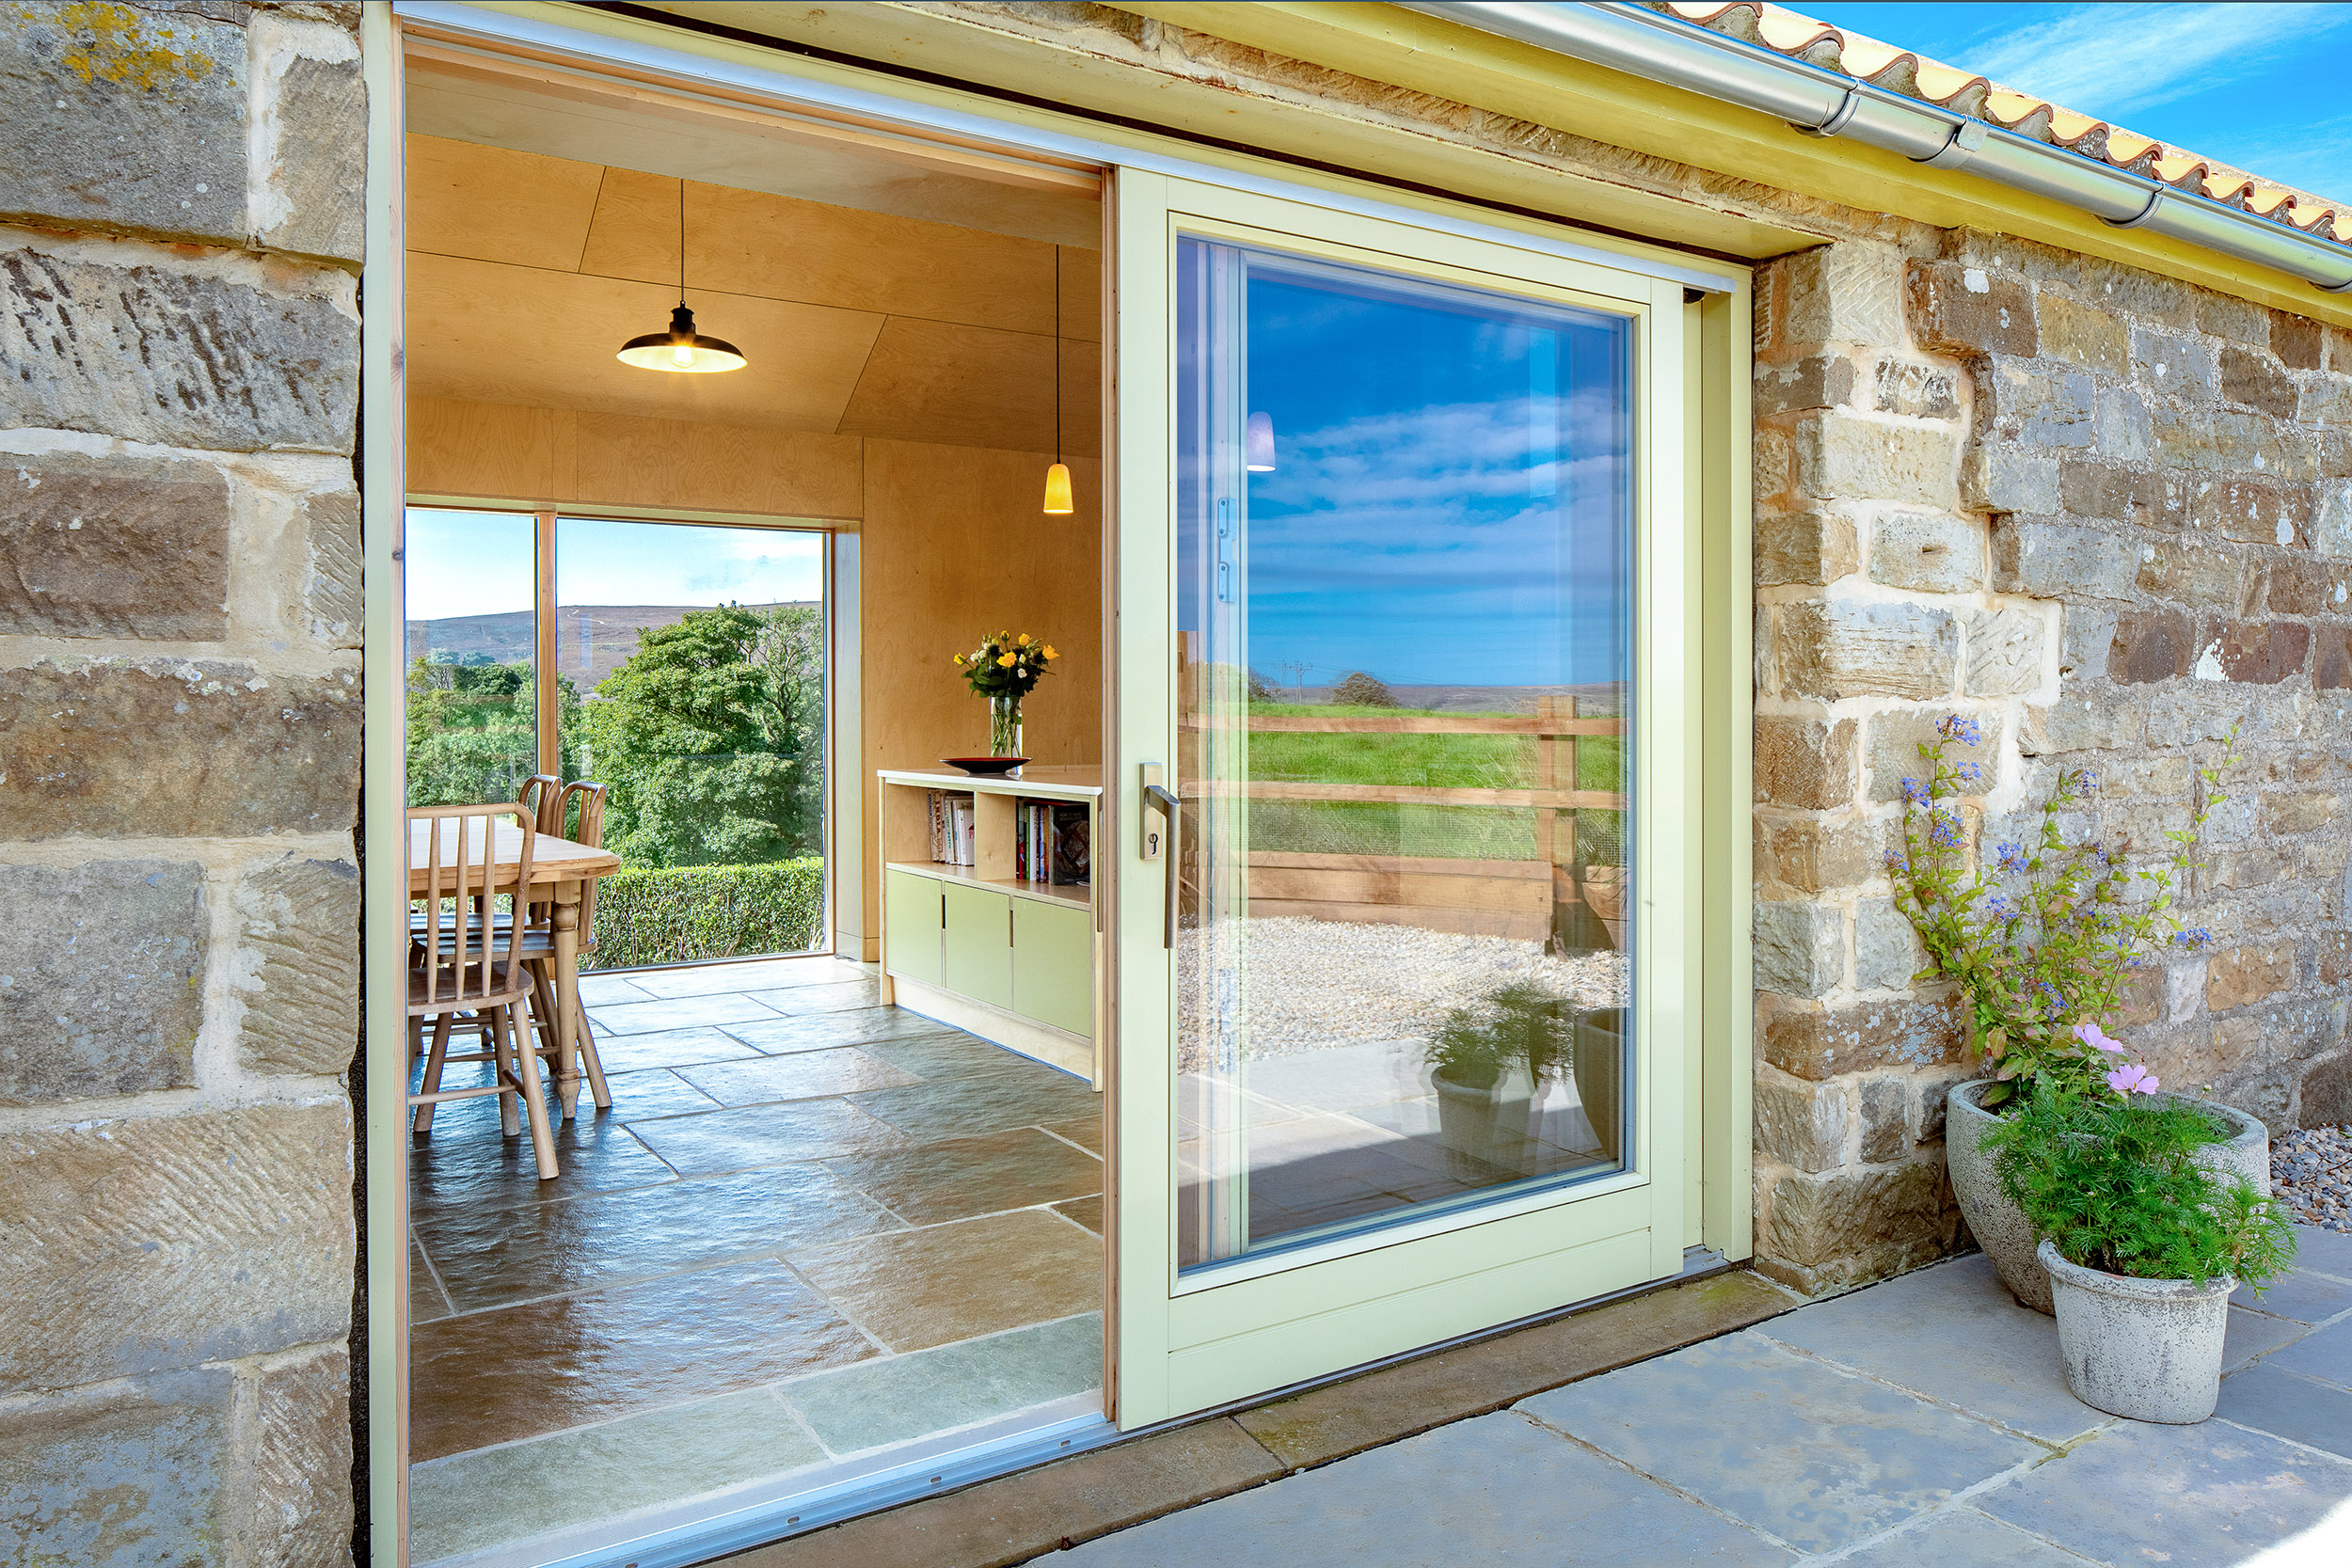 harper-perry-architects-housing-barn-westerdale-north-yorkshire-glazing-patio